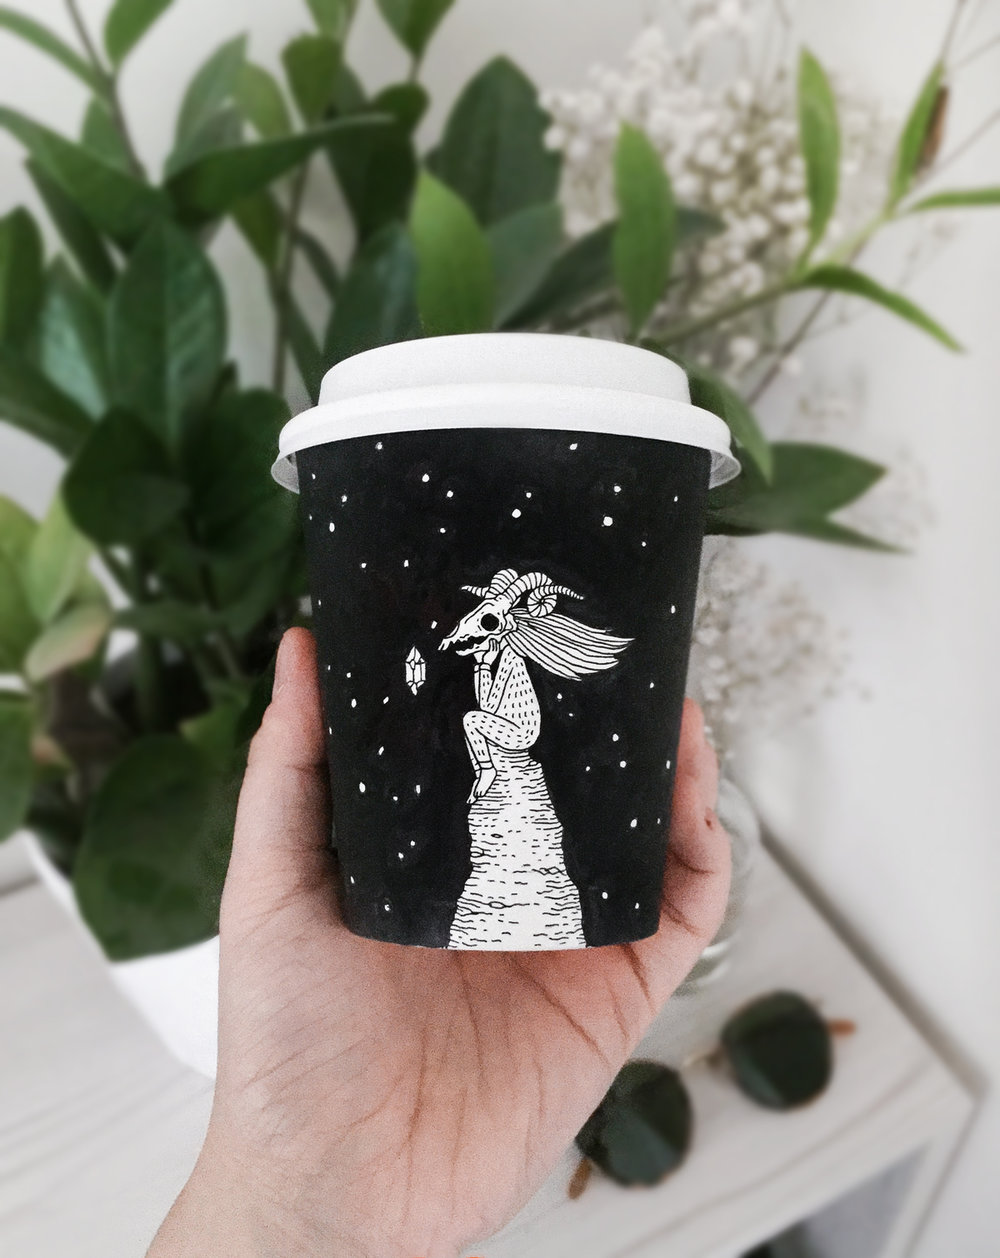 Coffee cup illustration